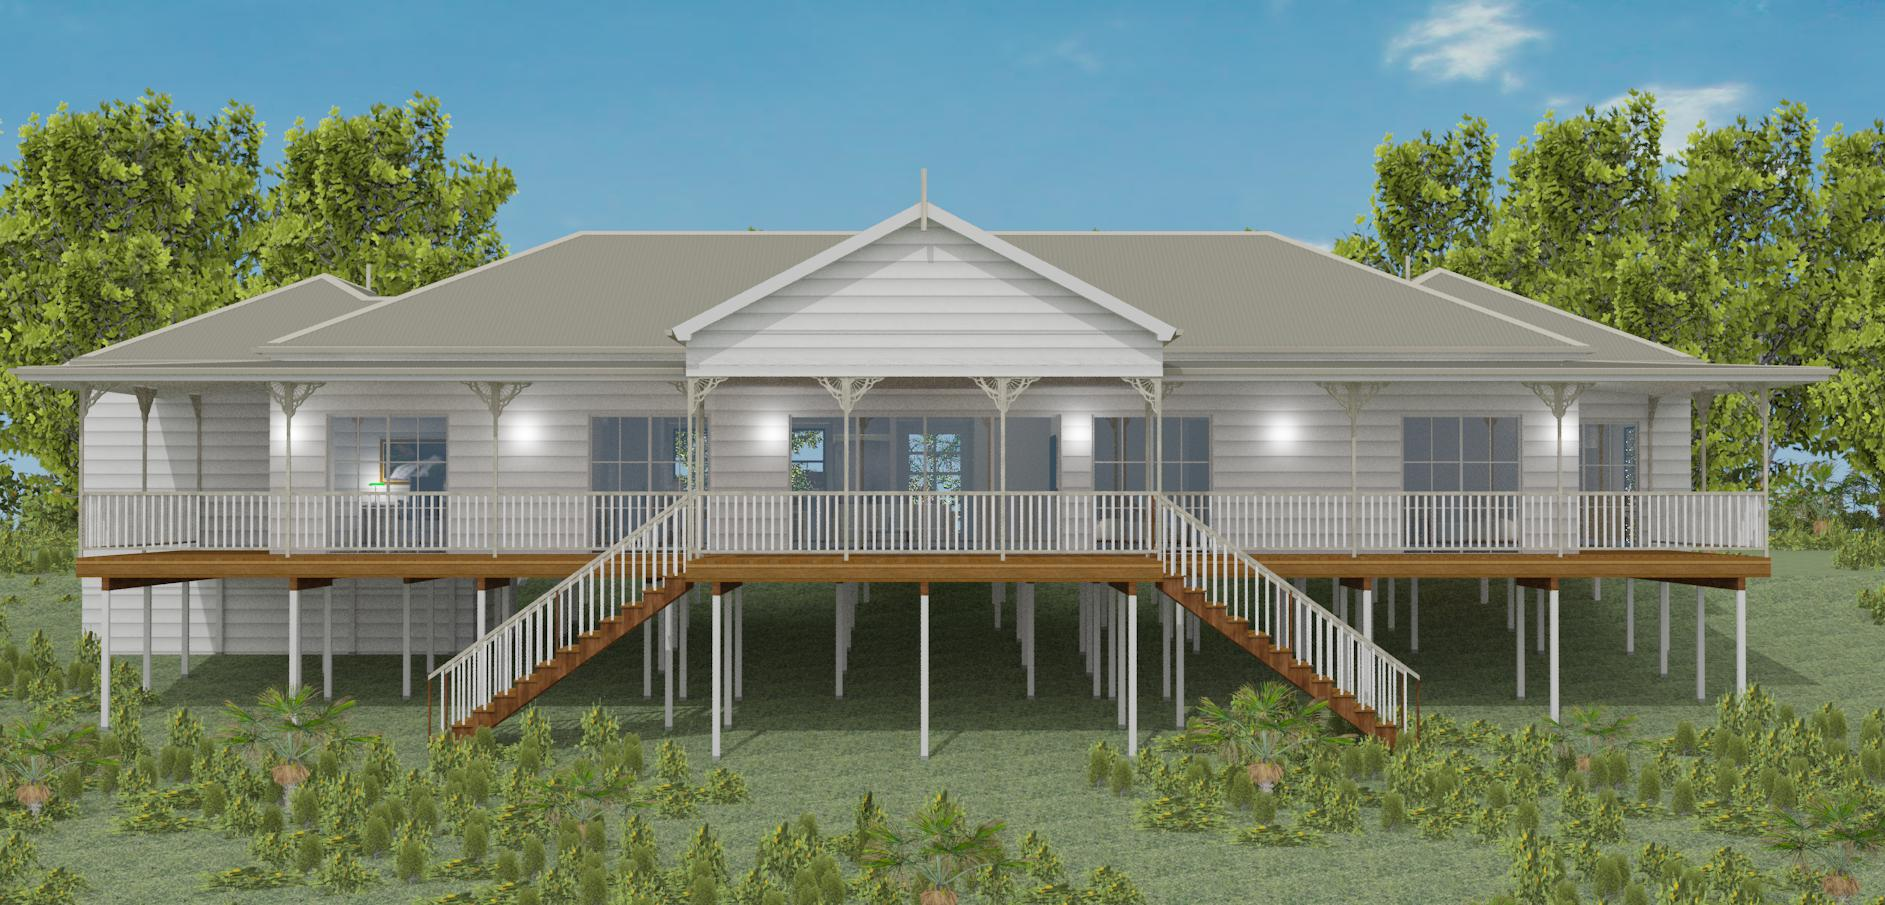 Queenslander home, pole home, raised